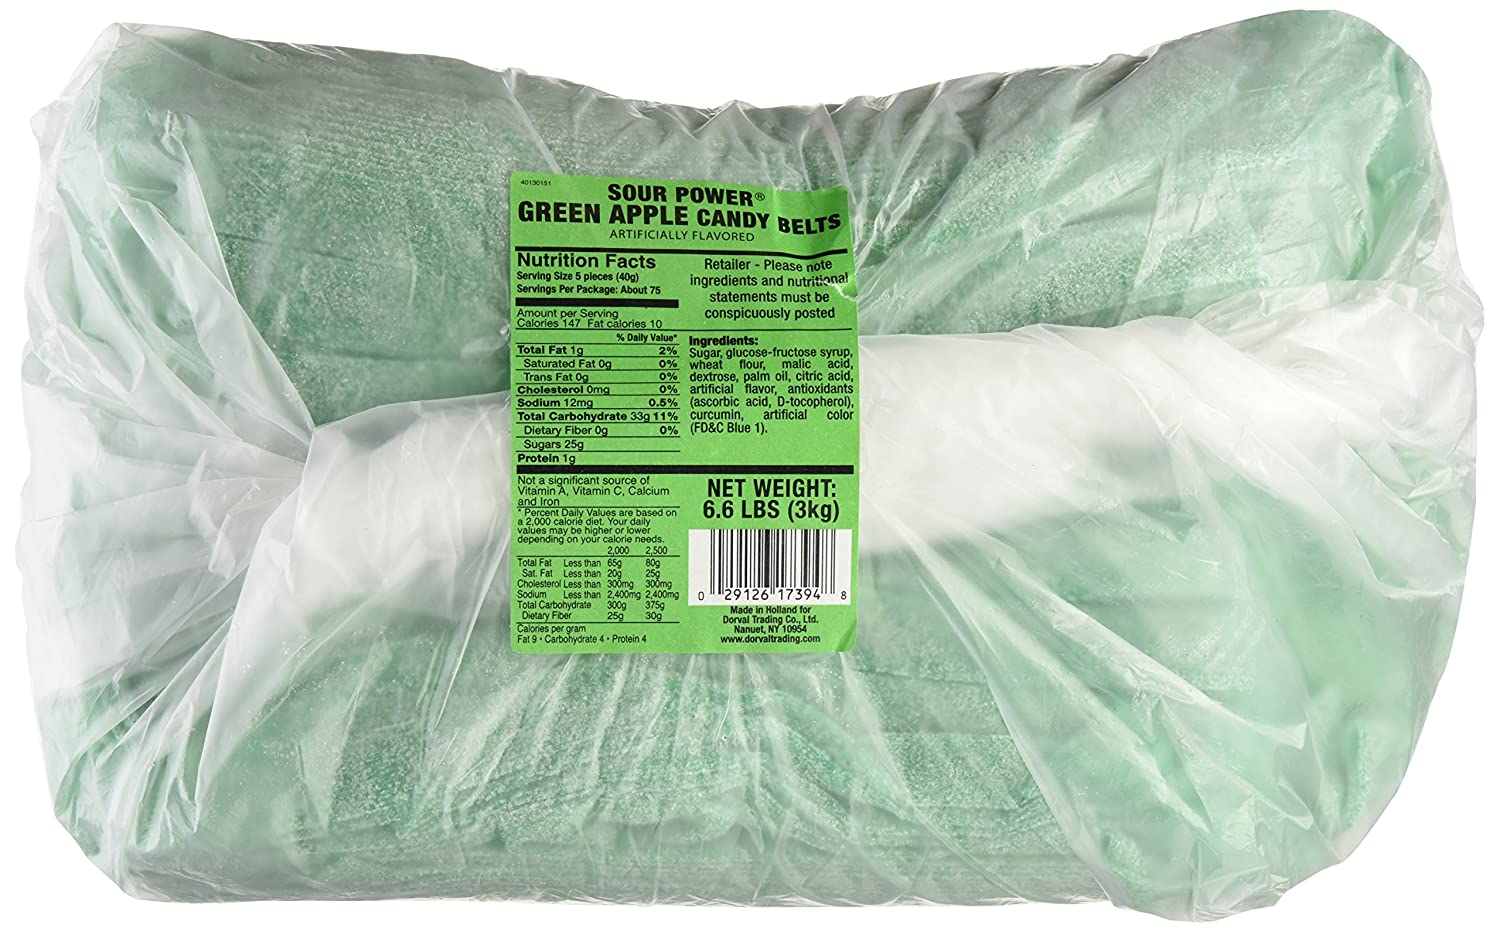 Sour Power Unwrapped Belts, Green Apple (approximately 297-count,unwrapped) Belts, 6.6-Pound Package, 105.6 Ounce